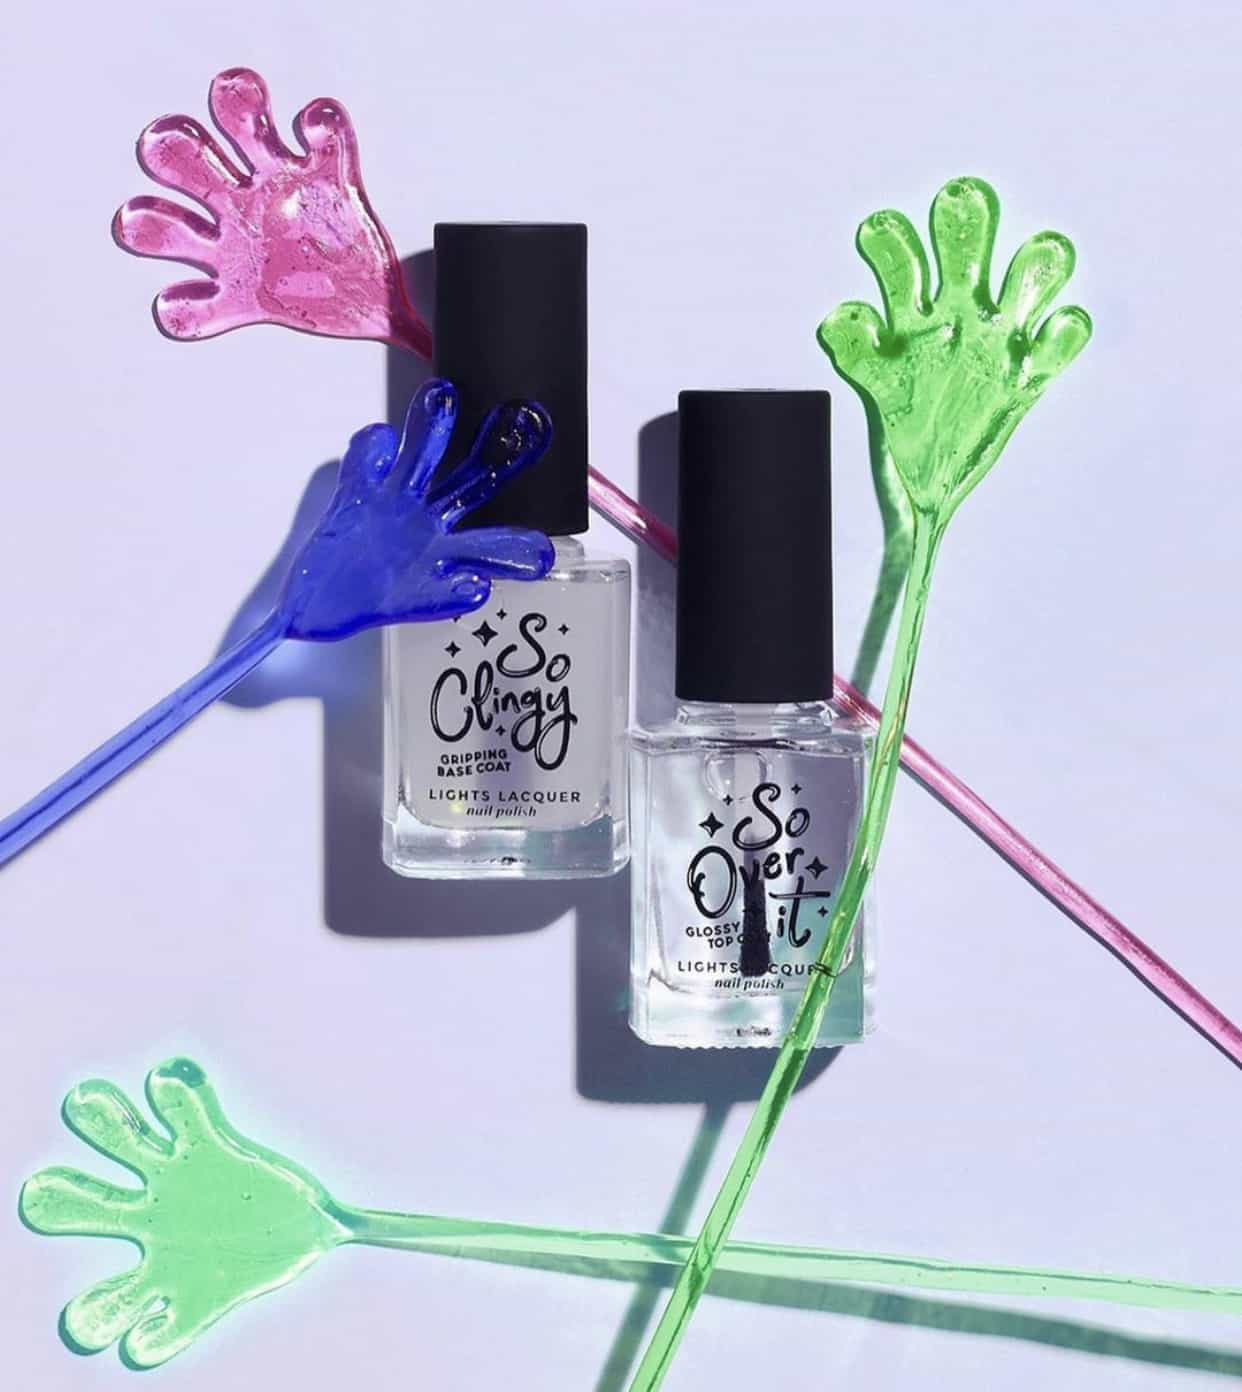 Lights Lacquer So Over It Glossy Top Coat